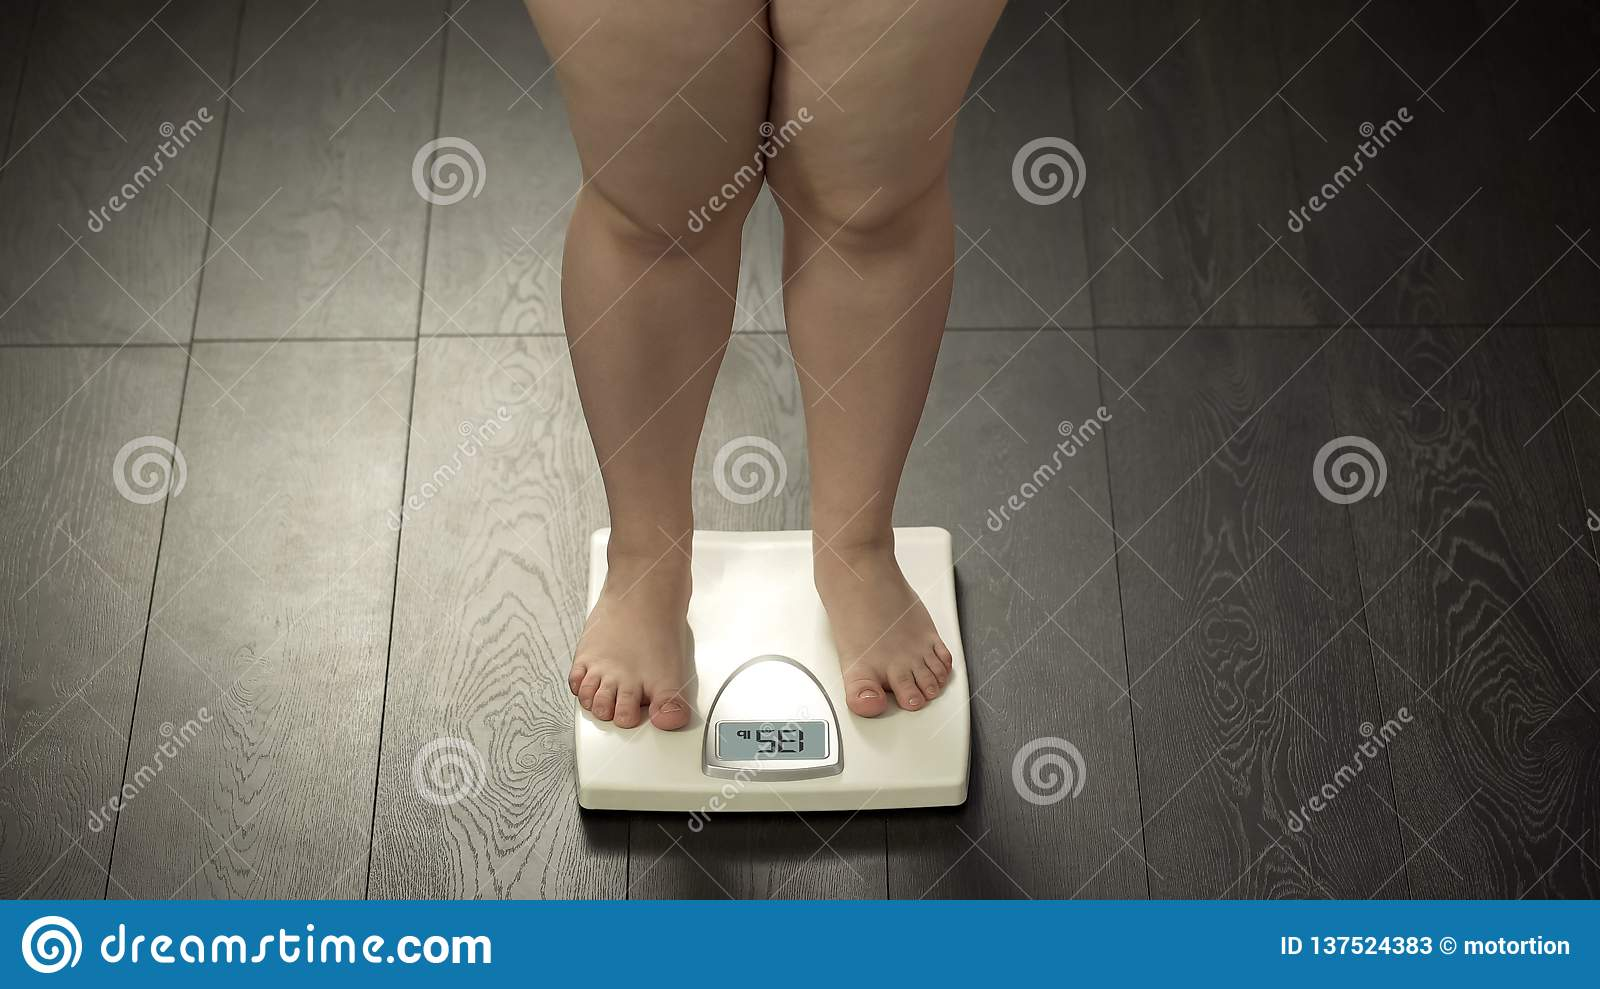 Chubby Woman Standing On Home Scales  Normal Weight